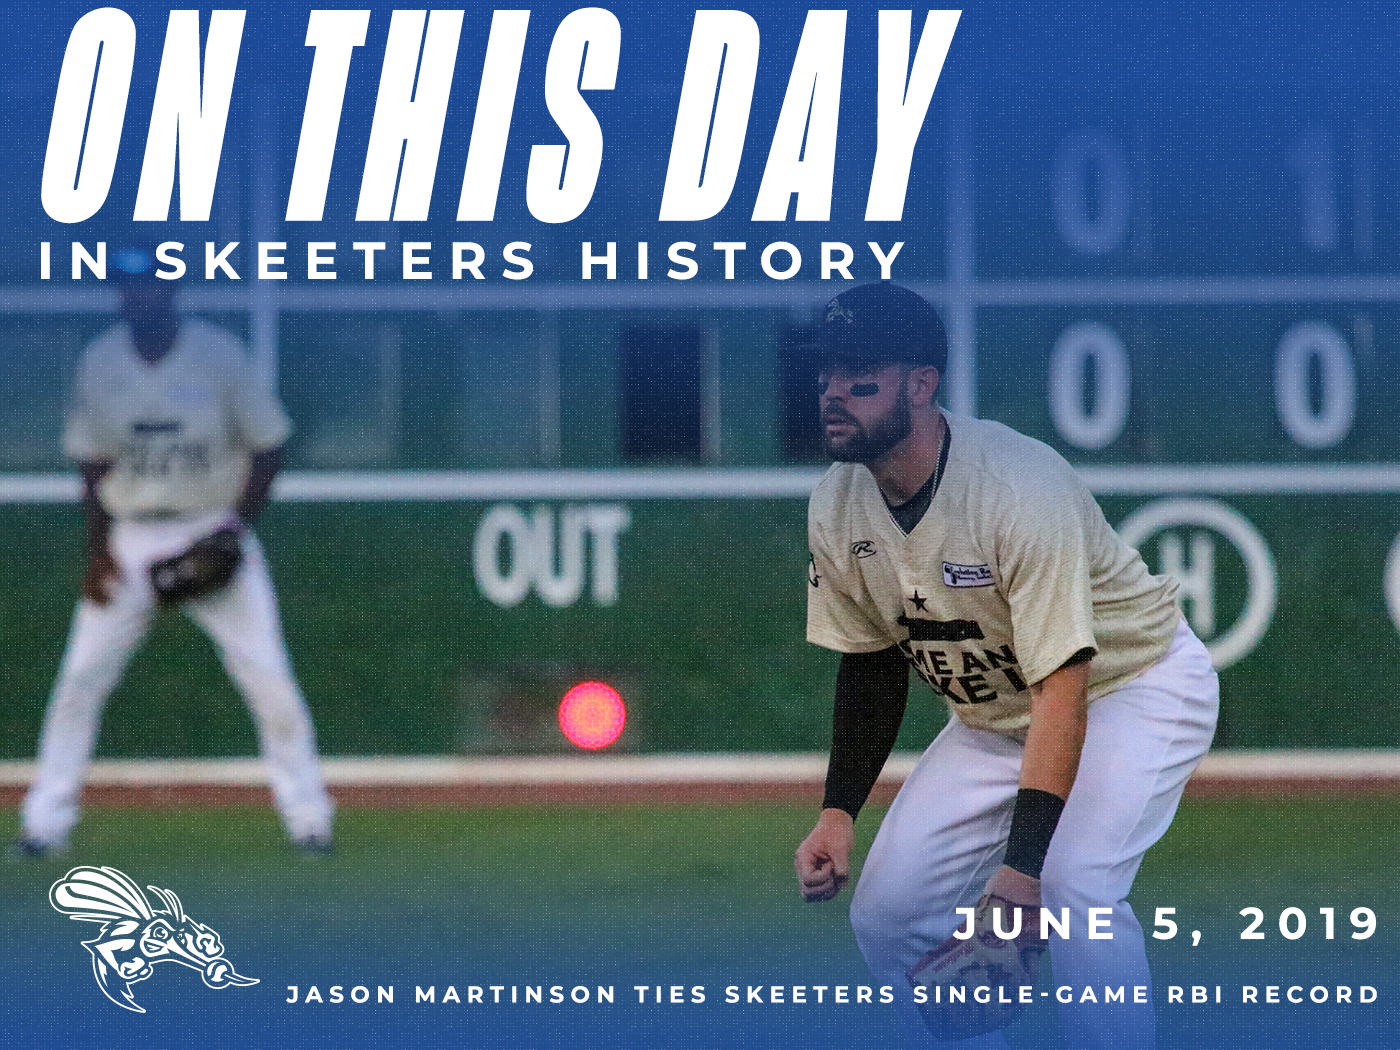 This Day in Skeeters History: June 5